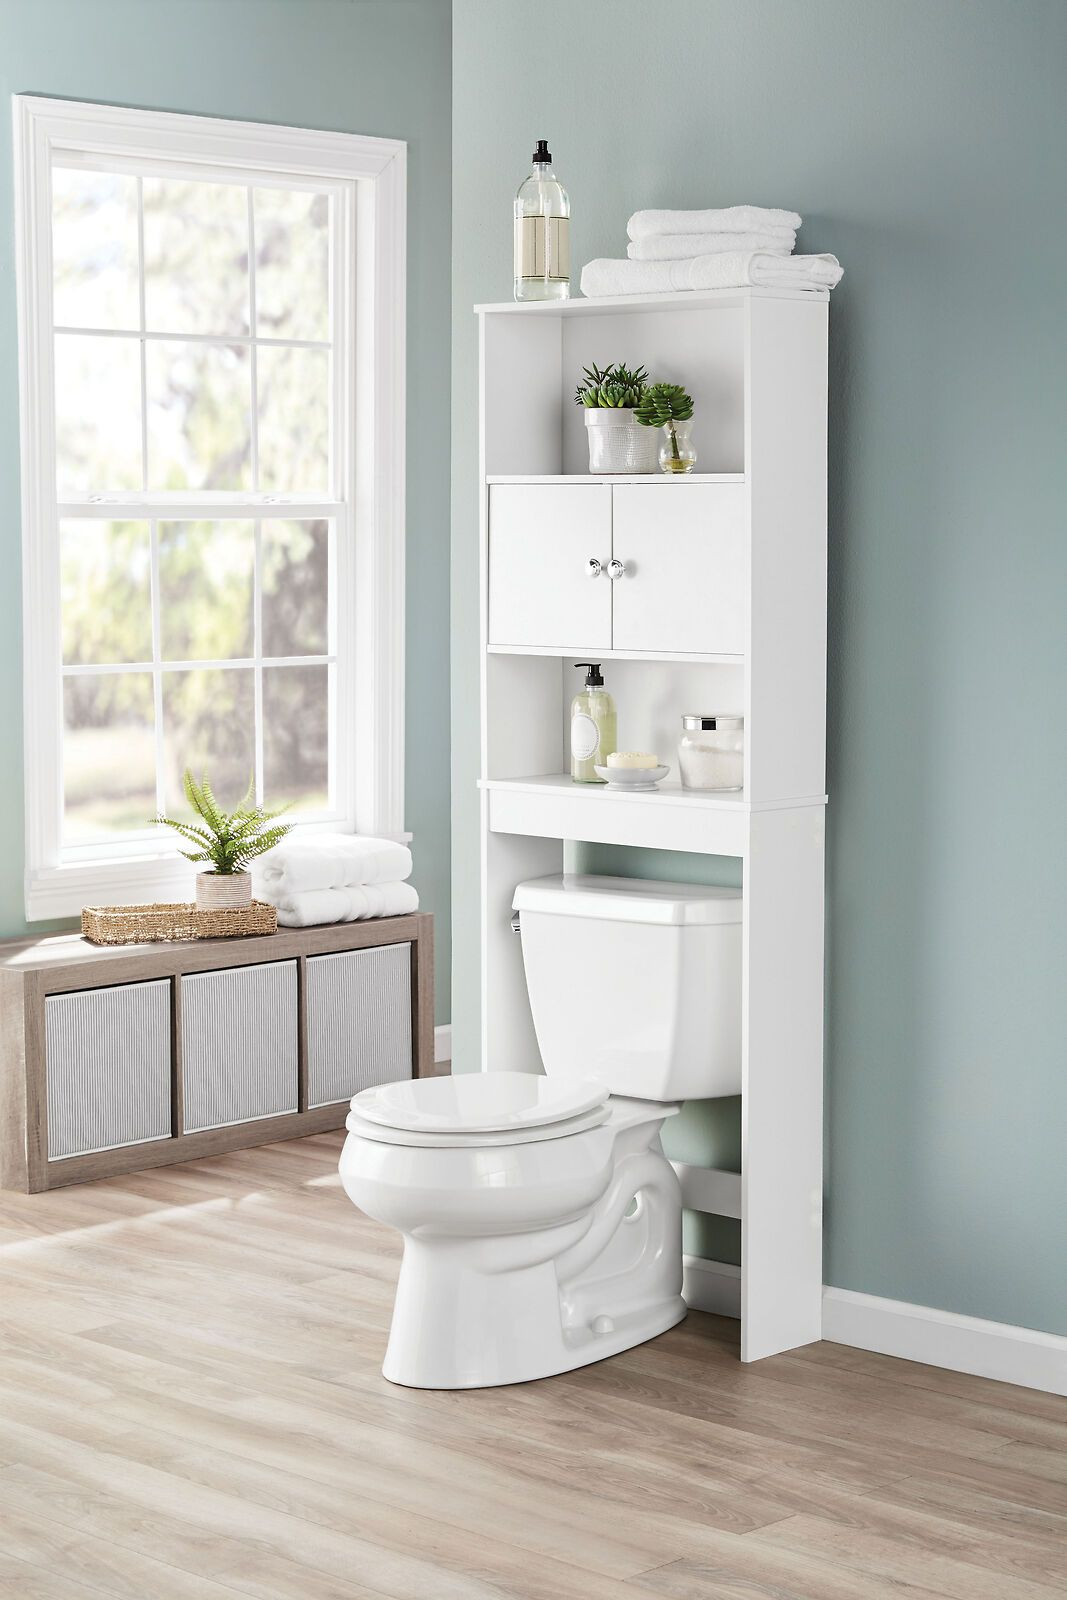 Details About New Bathroom Over The Toilet Space Saver Storage Cabinet Shelf Organizer White In 2020 White Bathroom Storage Bathroom Space Saver Toilet Storage